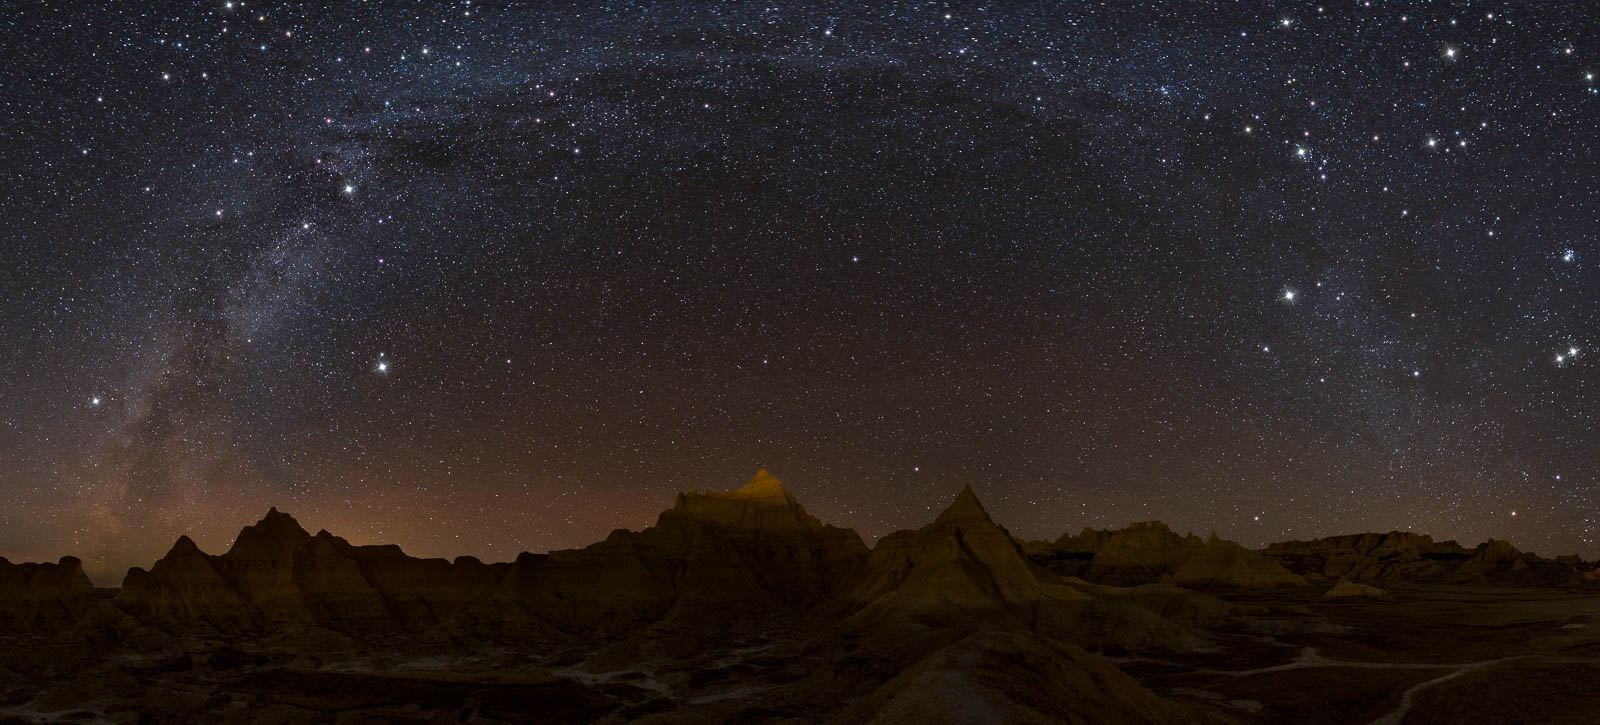 Who says you can't shoot the milky way in the winter? Taken a week ago in the Badlands in South Dakota. This is a 13 image pano...